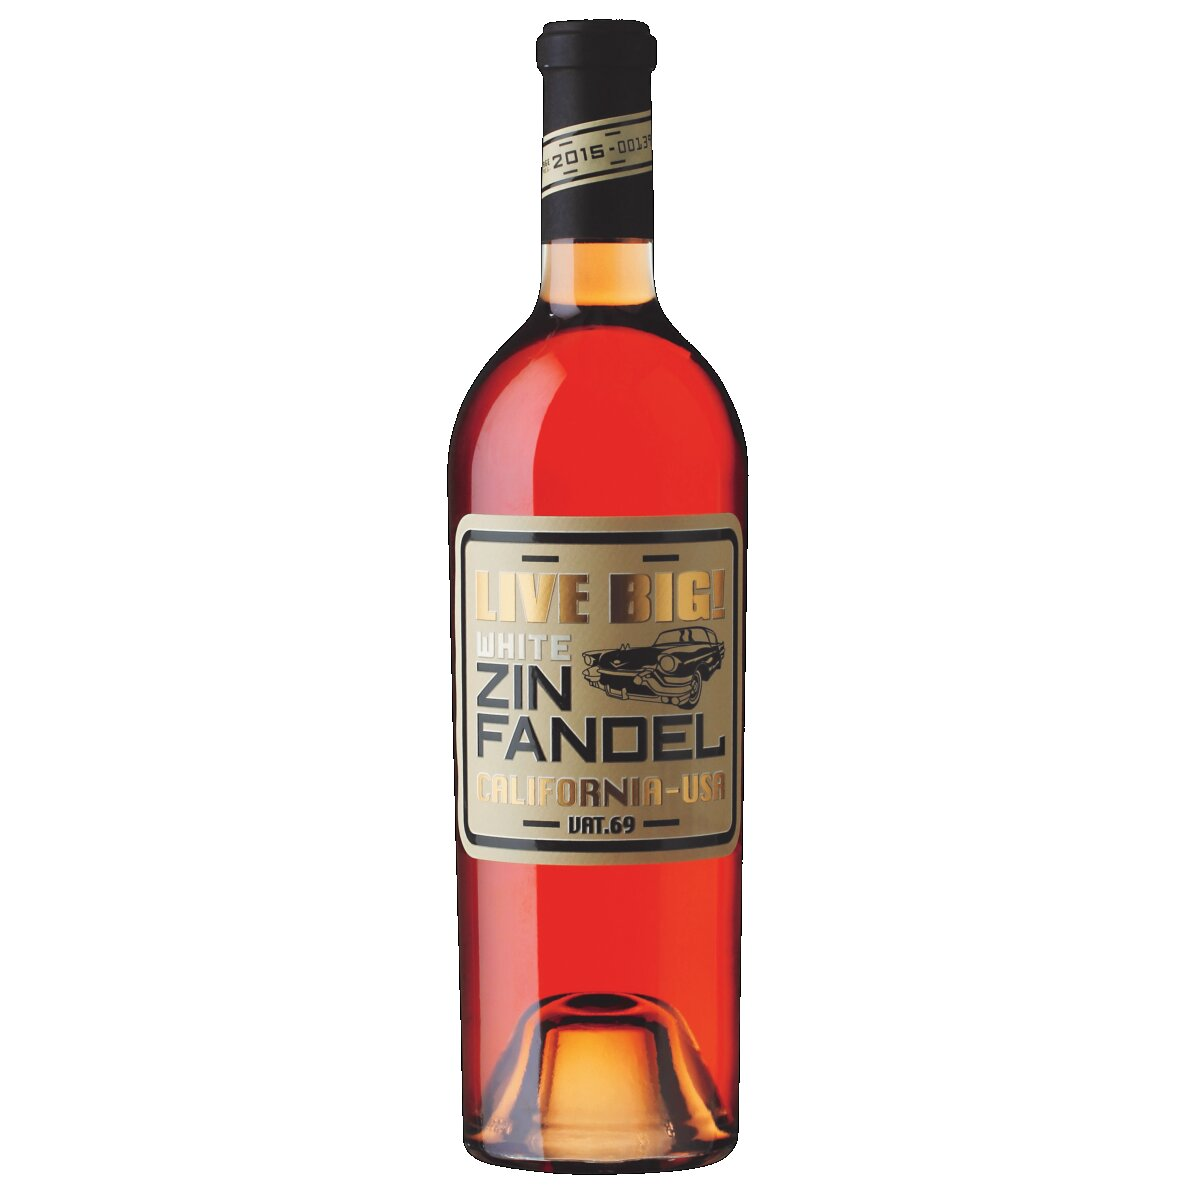 LIVE BIG! White Zinfandel - BIG! - , , , ,